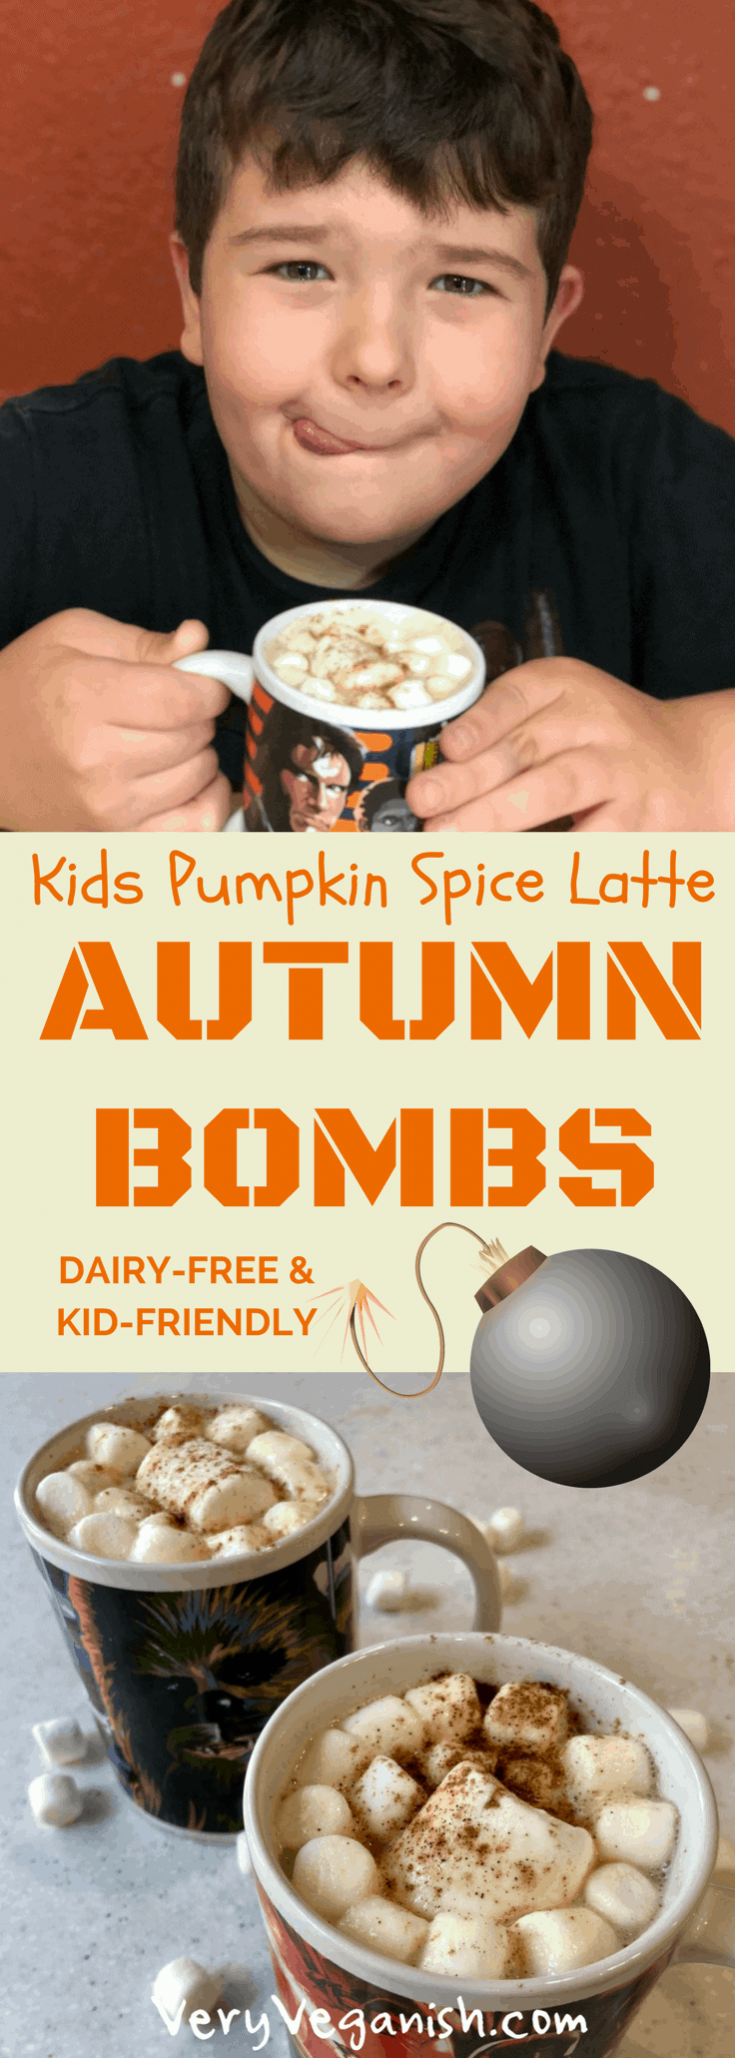 Autumn Bombs - Kids Pumpkin Spice Latte Steamer Recipe by Very Veganish. A great alternative to hot cocoa for those chilly fall days. Caffeine-free, dairy-free and refined-sugar free, this pumpkin spice syrup has many uses also. #psl #pumpkinspicelatte #pumpkinspice